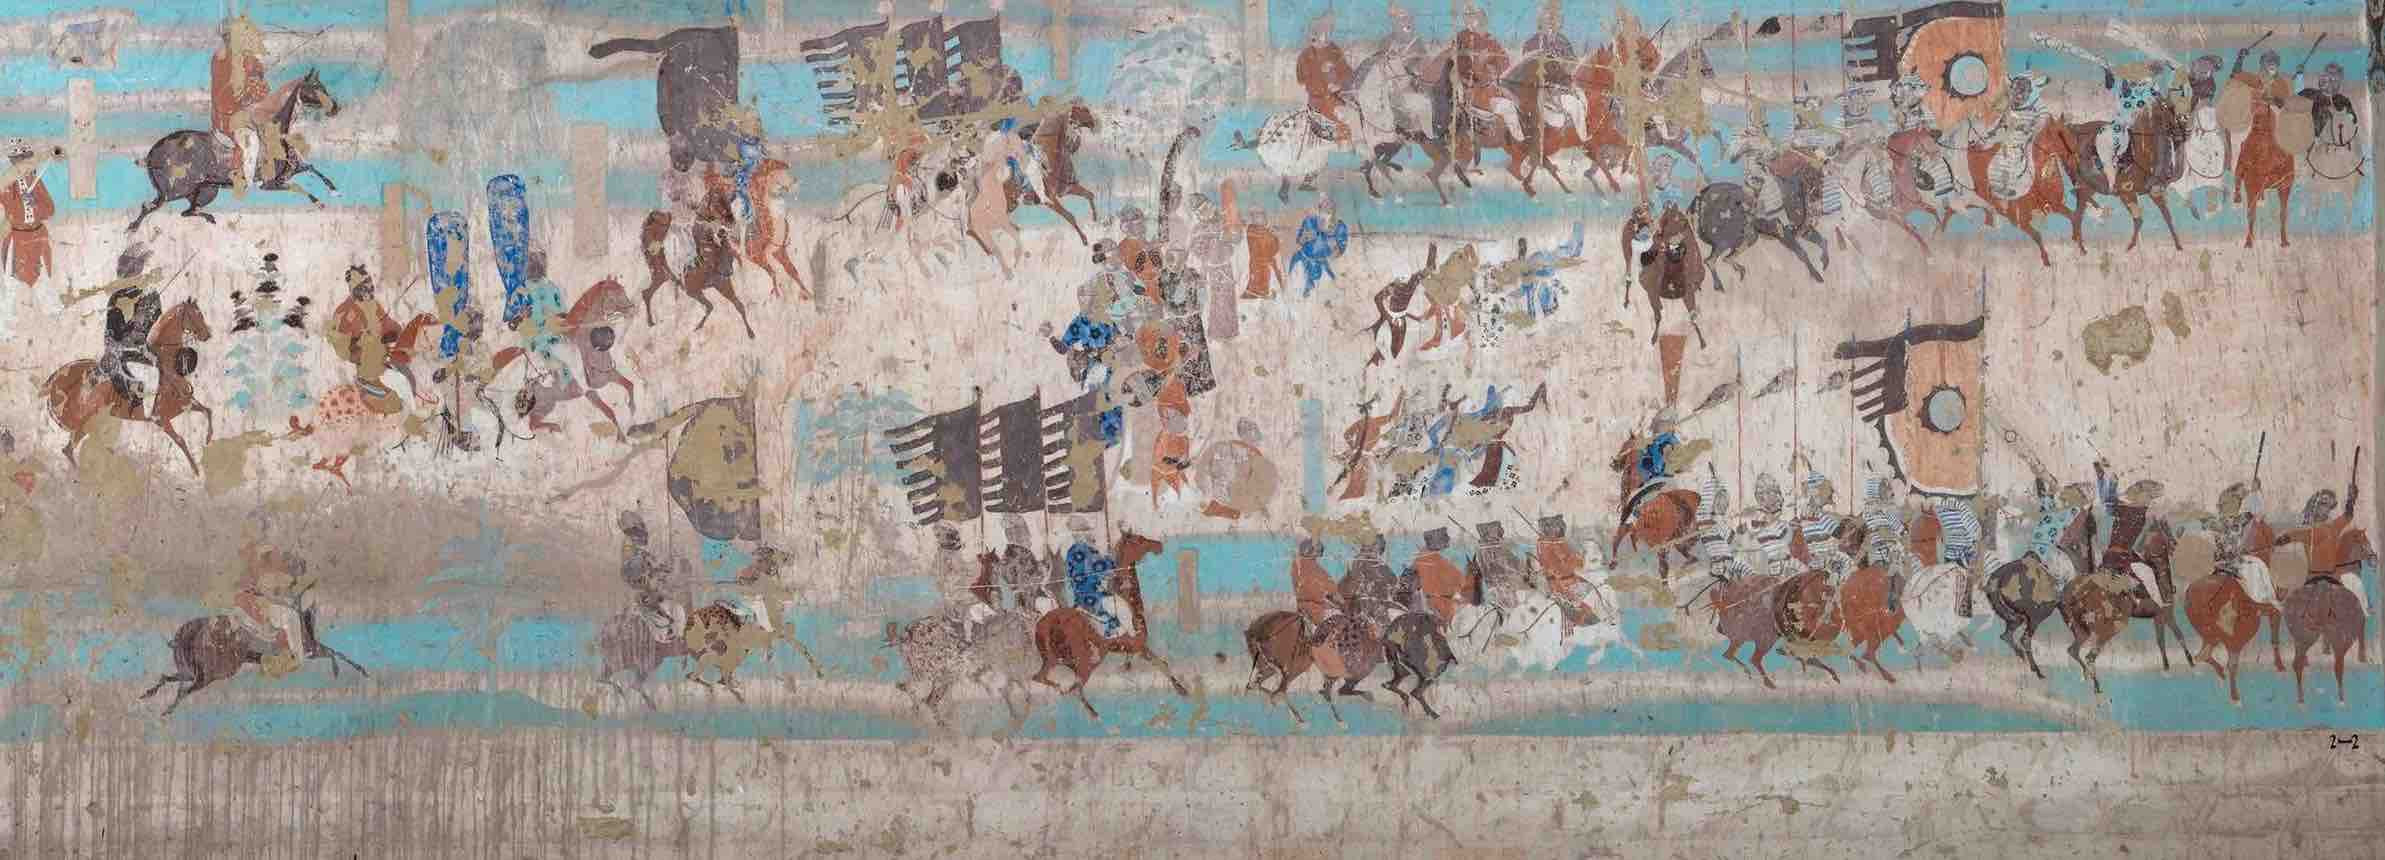 Military Marching of General Zhang Yichao, Mogao Cave 156.